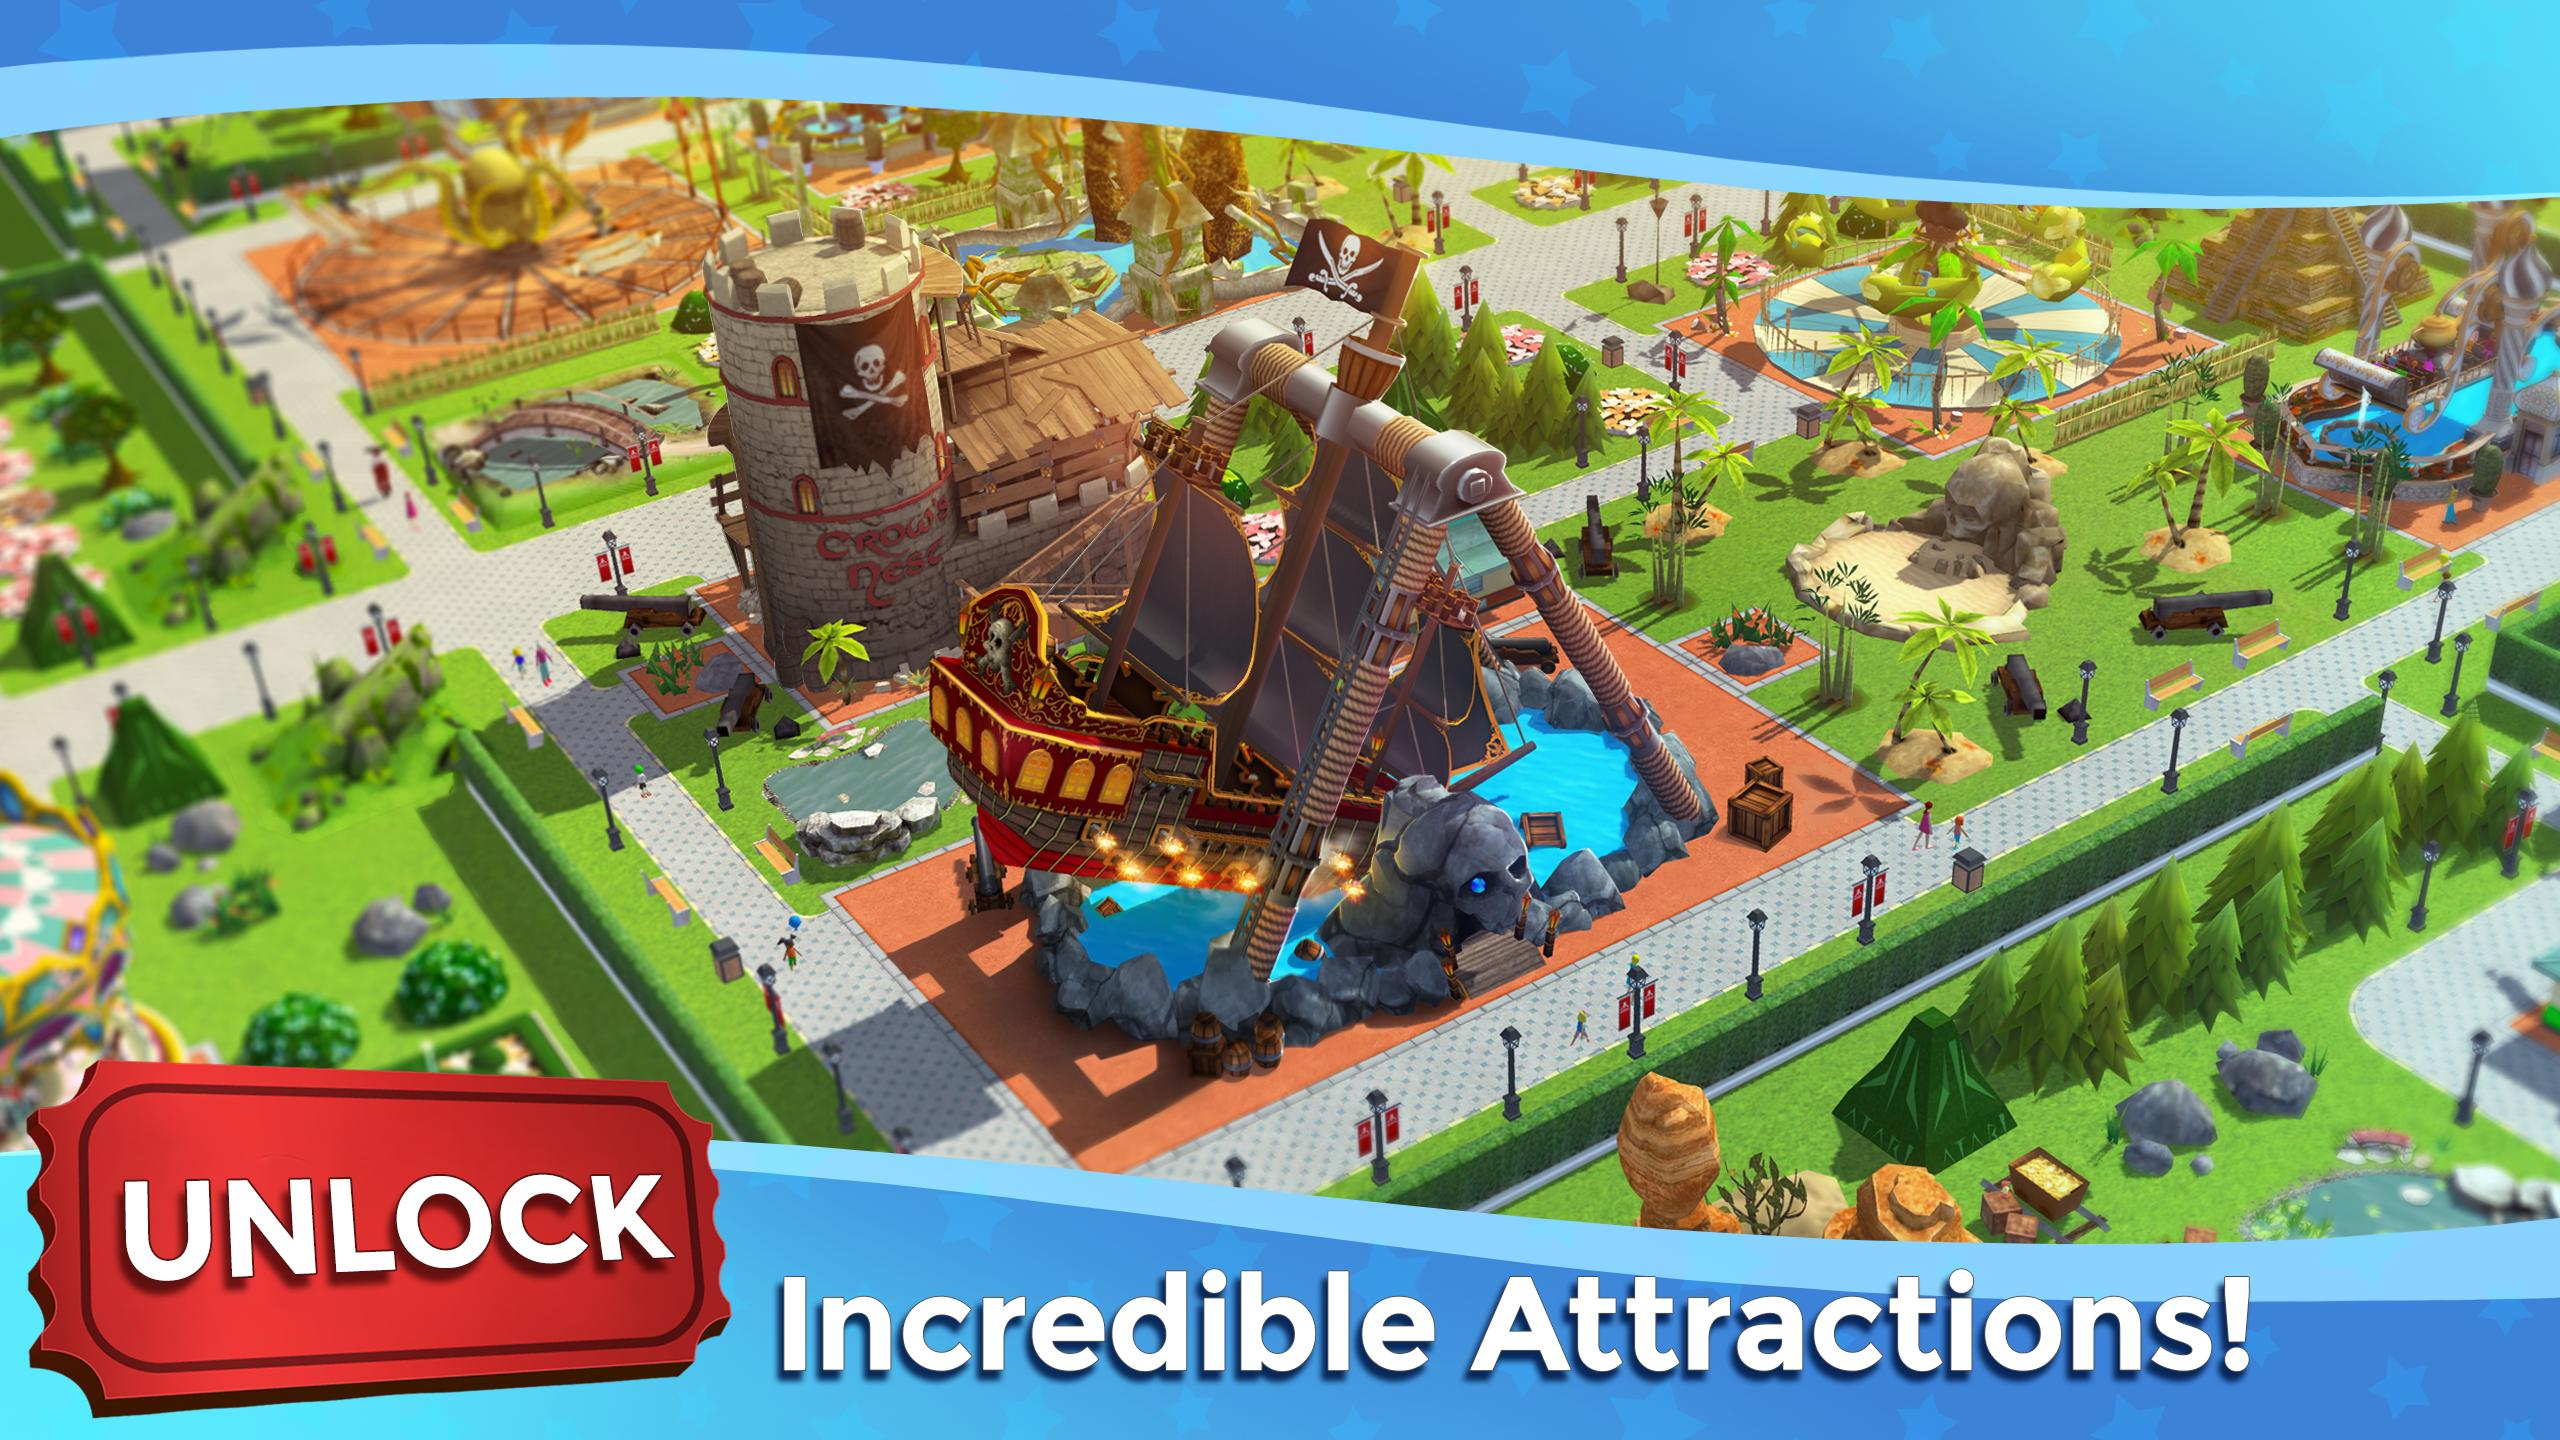 RollerCoaster Tycoon Touch - Build your Theme Park 3.5.0 Screenshot 3